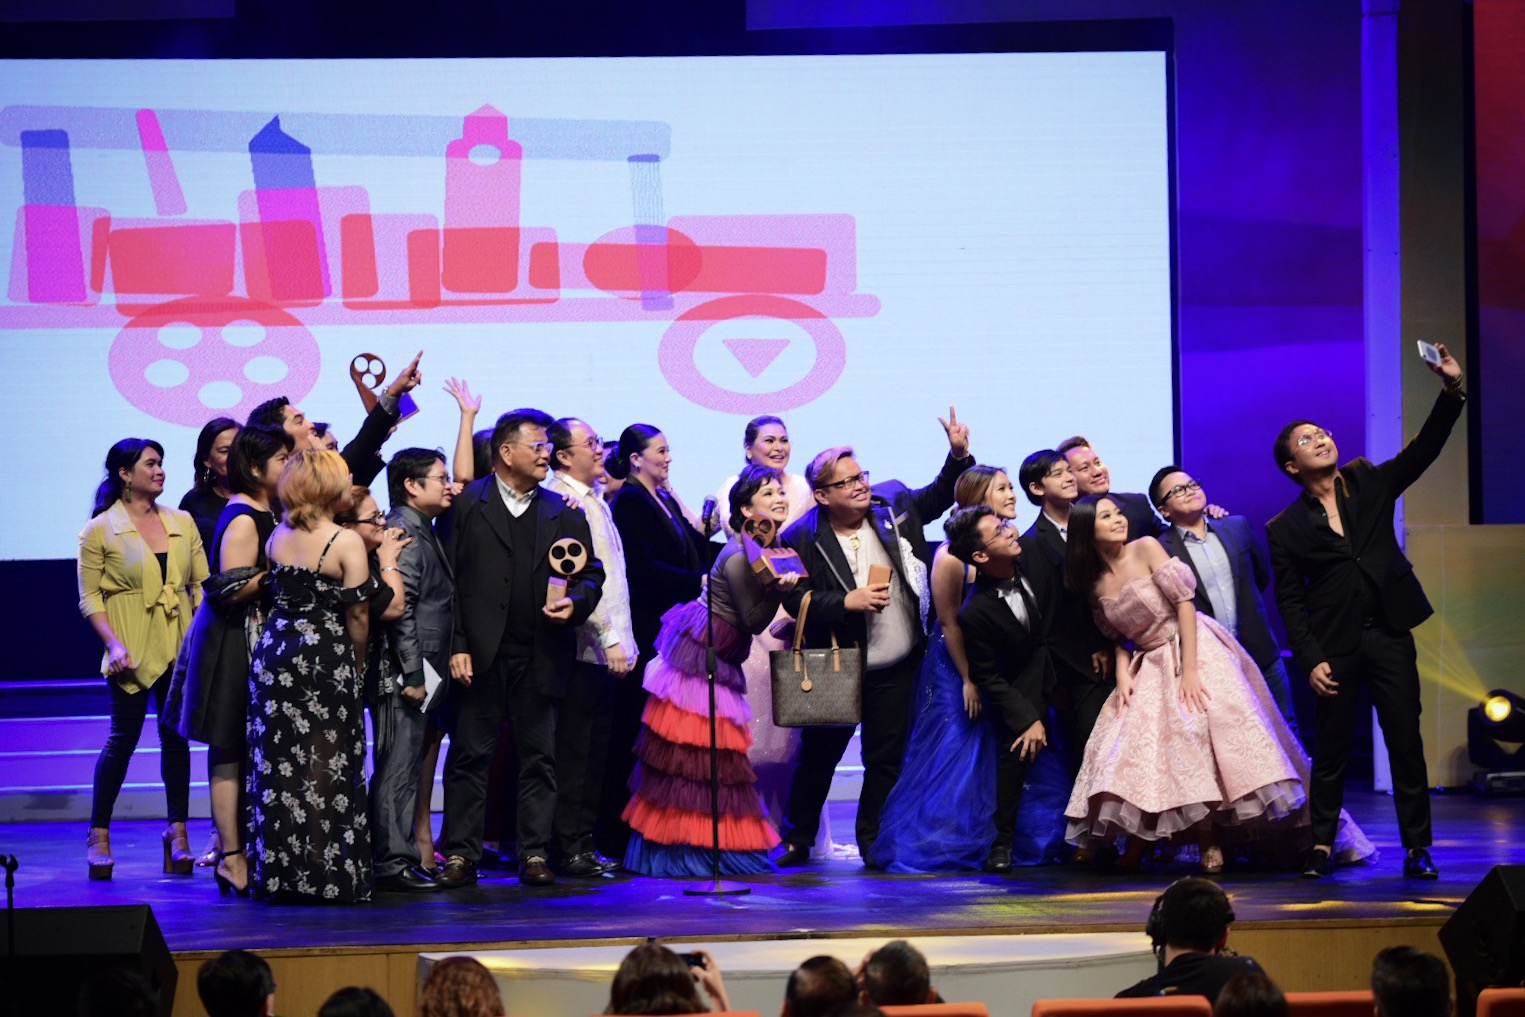 NEW RECORD. The Metro Manila Film Festival organizers announce they've reached P1.060 billion, the highest grossing MMFF festival ever. Photo shows the cast of 'Rainbow's Sunset' after their wins last December. File photo by Alecs Ongcal/Rappler